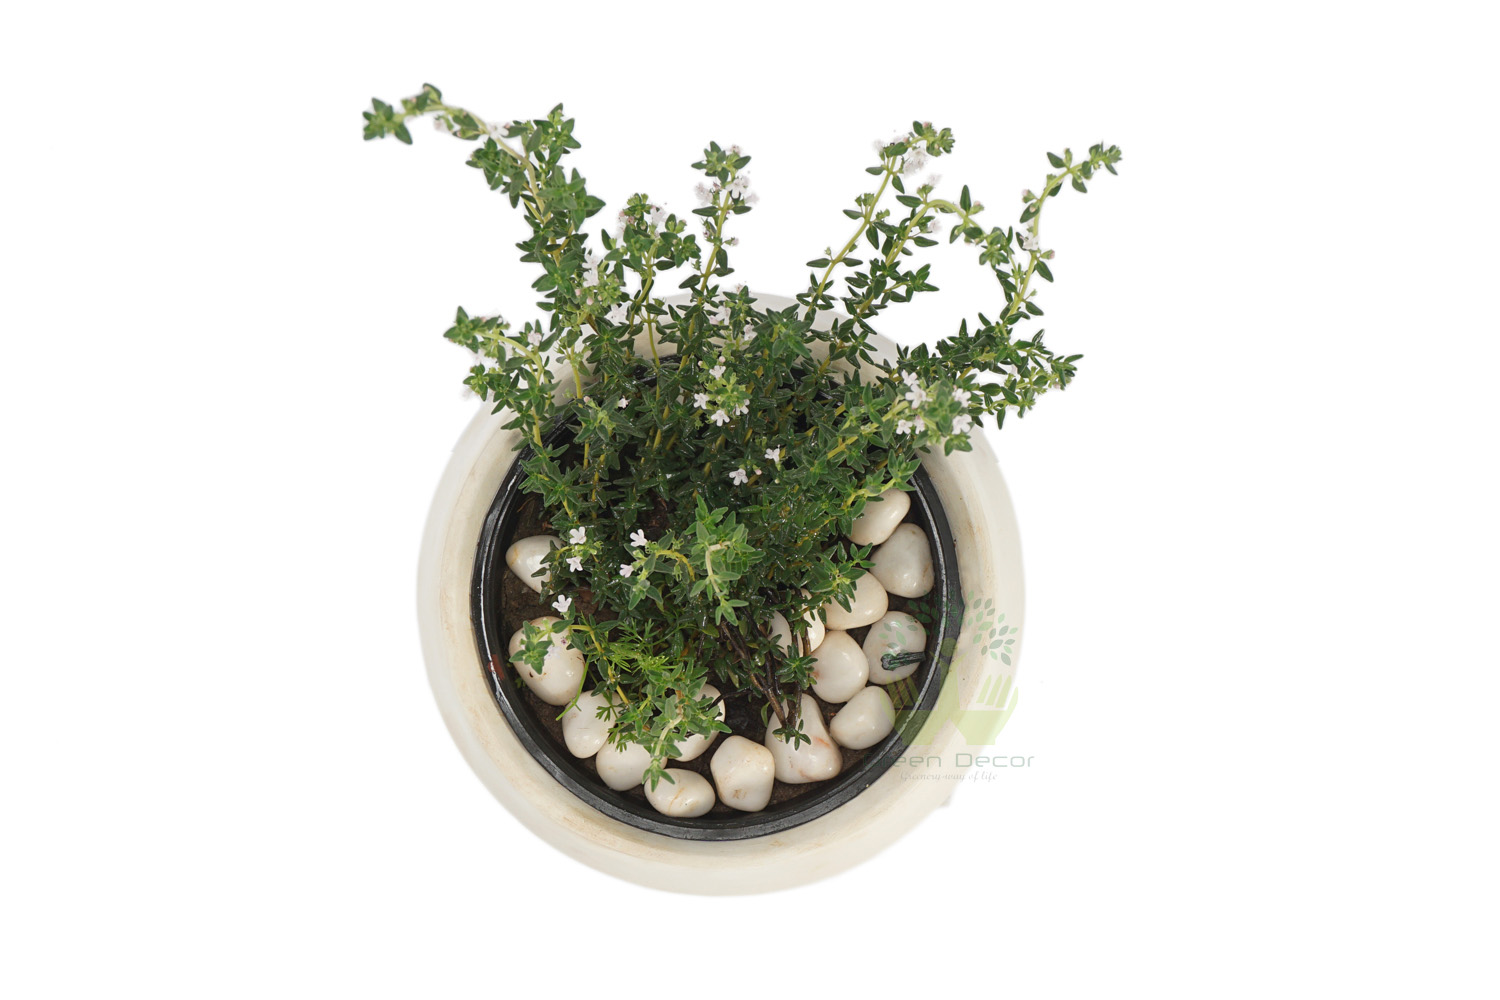 Buy Thyme Plants , White Pots and seeds in Delhi NCR by the best online nursery shop Greendecor.